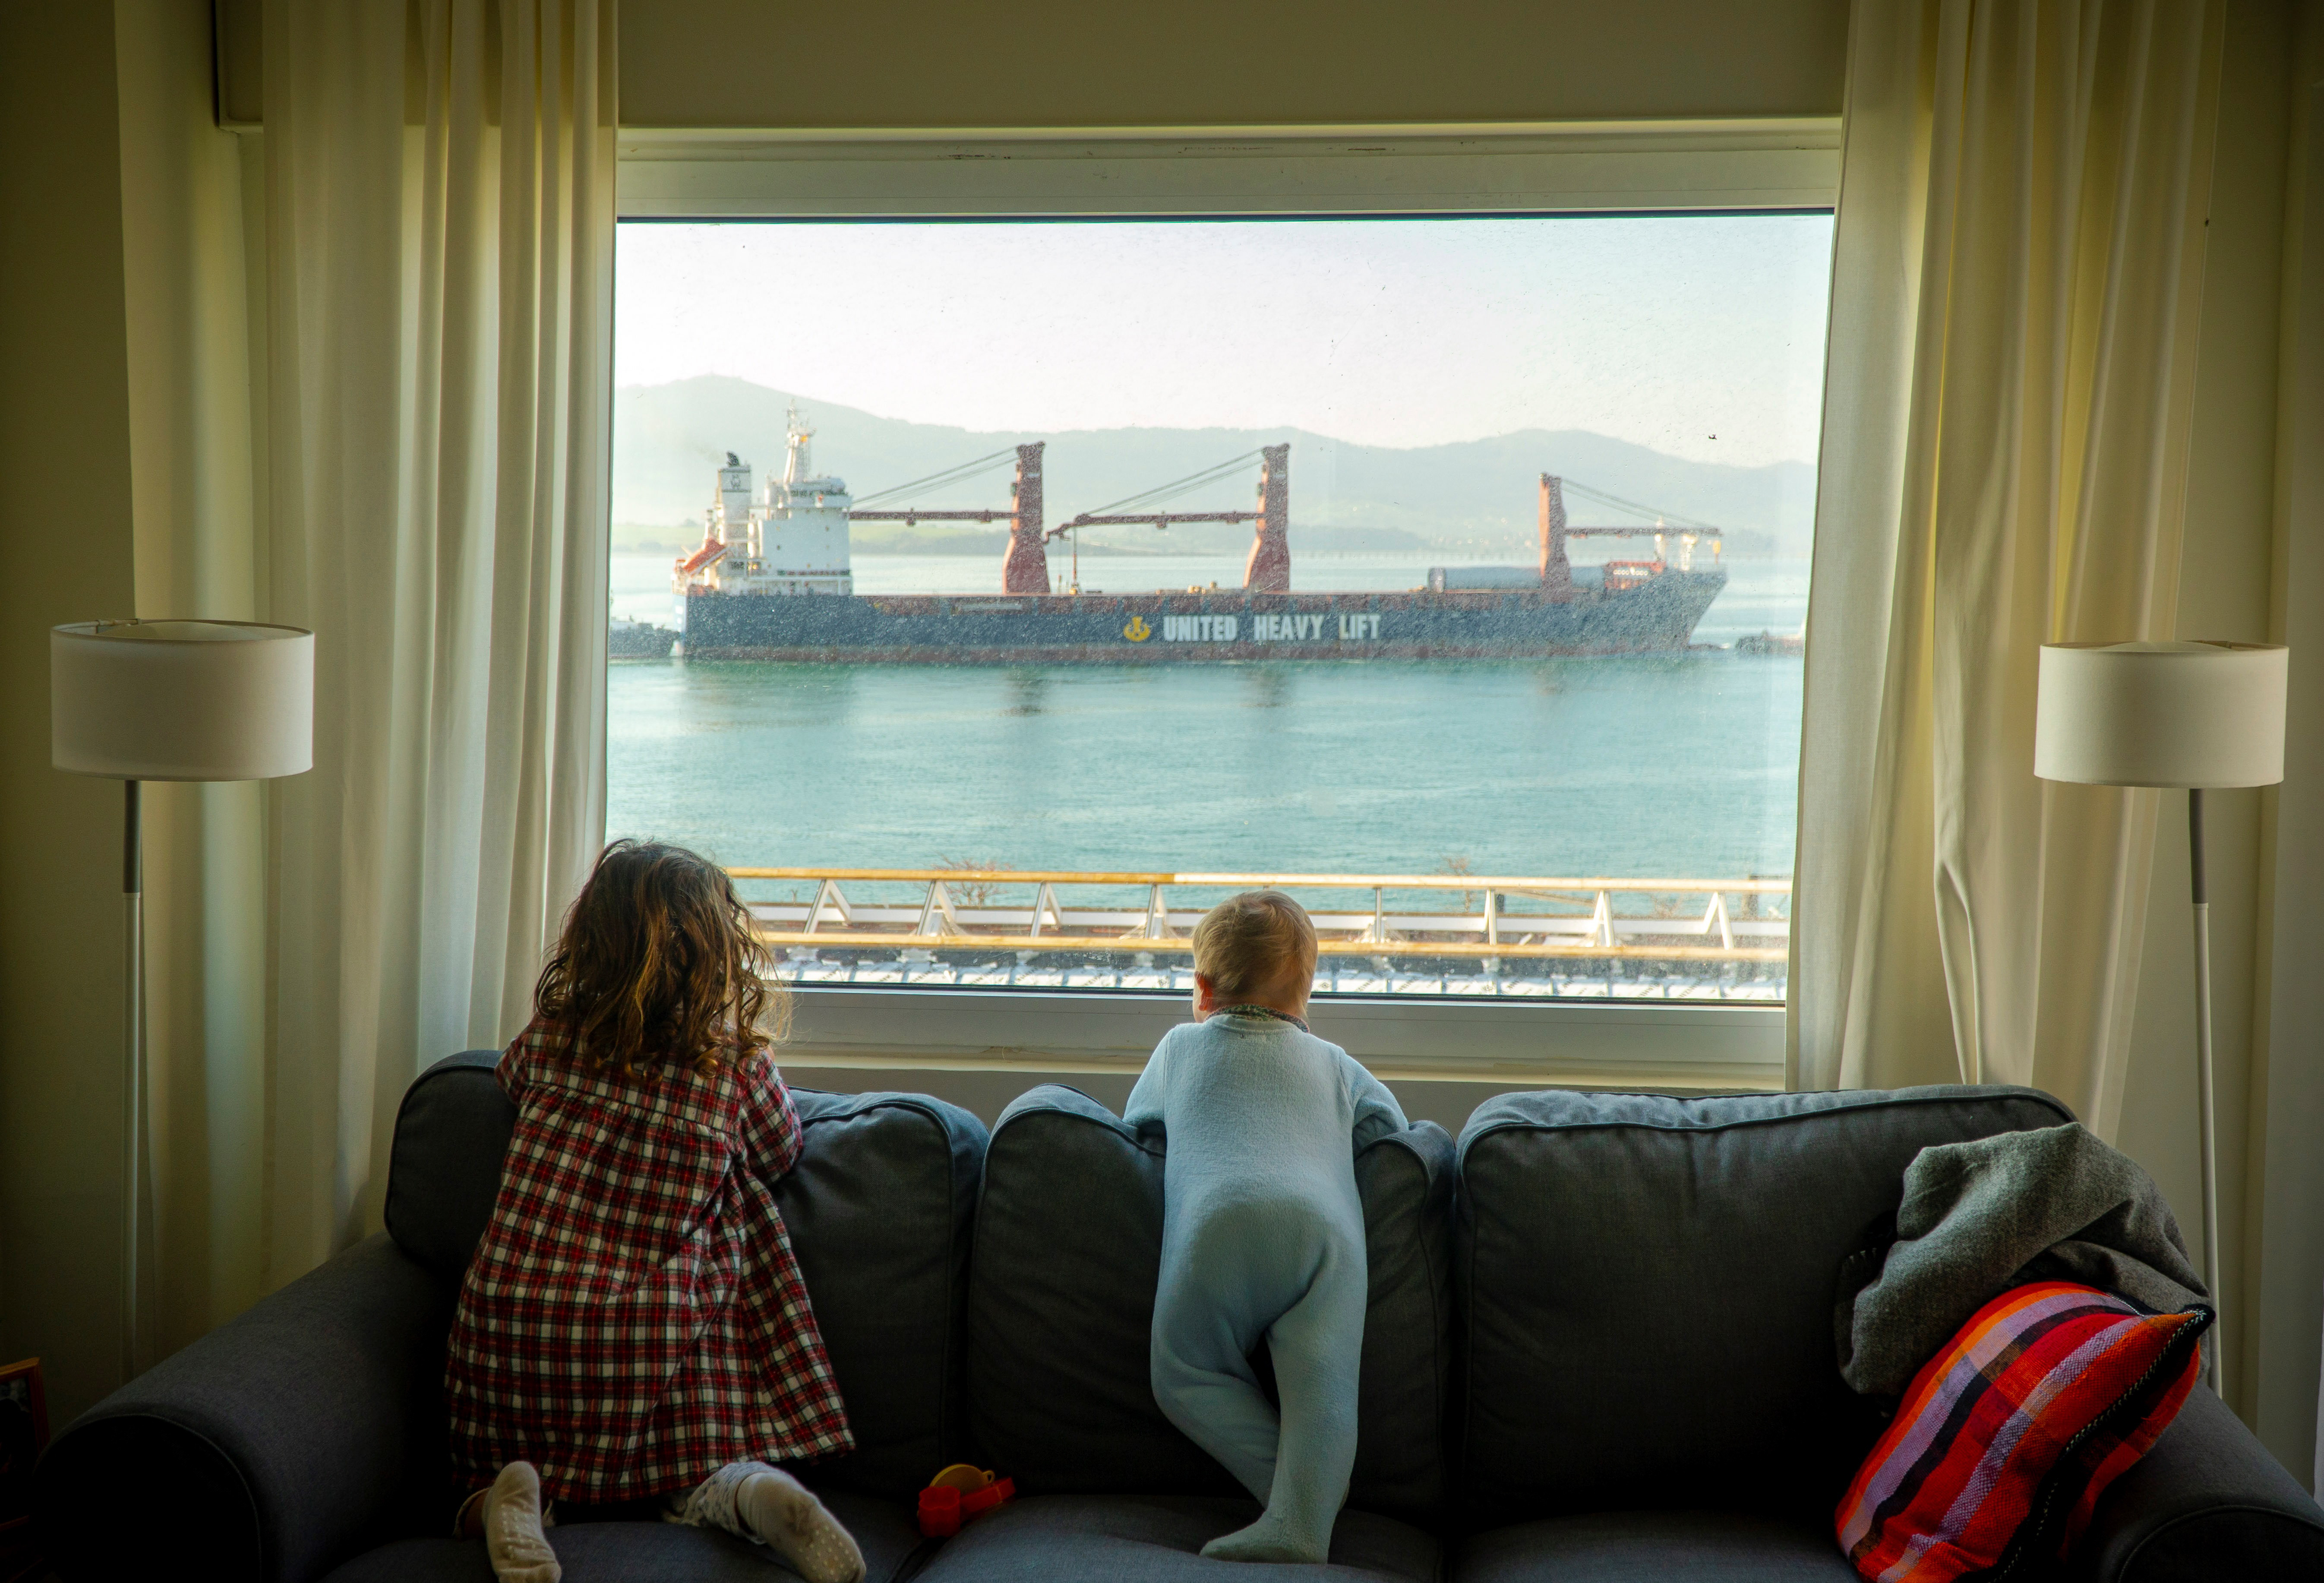 wo young girls look at the merchant ships docking at the port from the window of their house, during the coronavirus emergency lockdown, in Santander, Spain